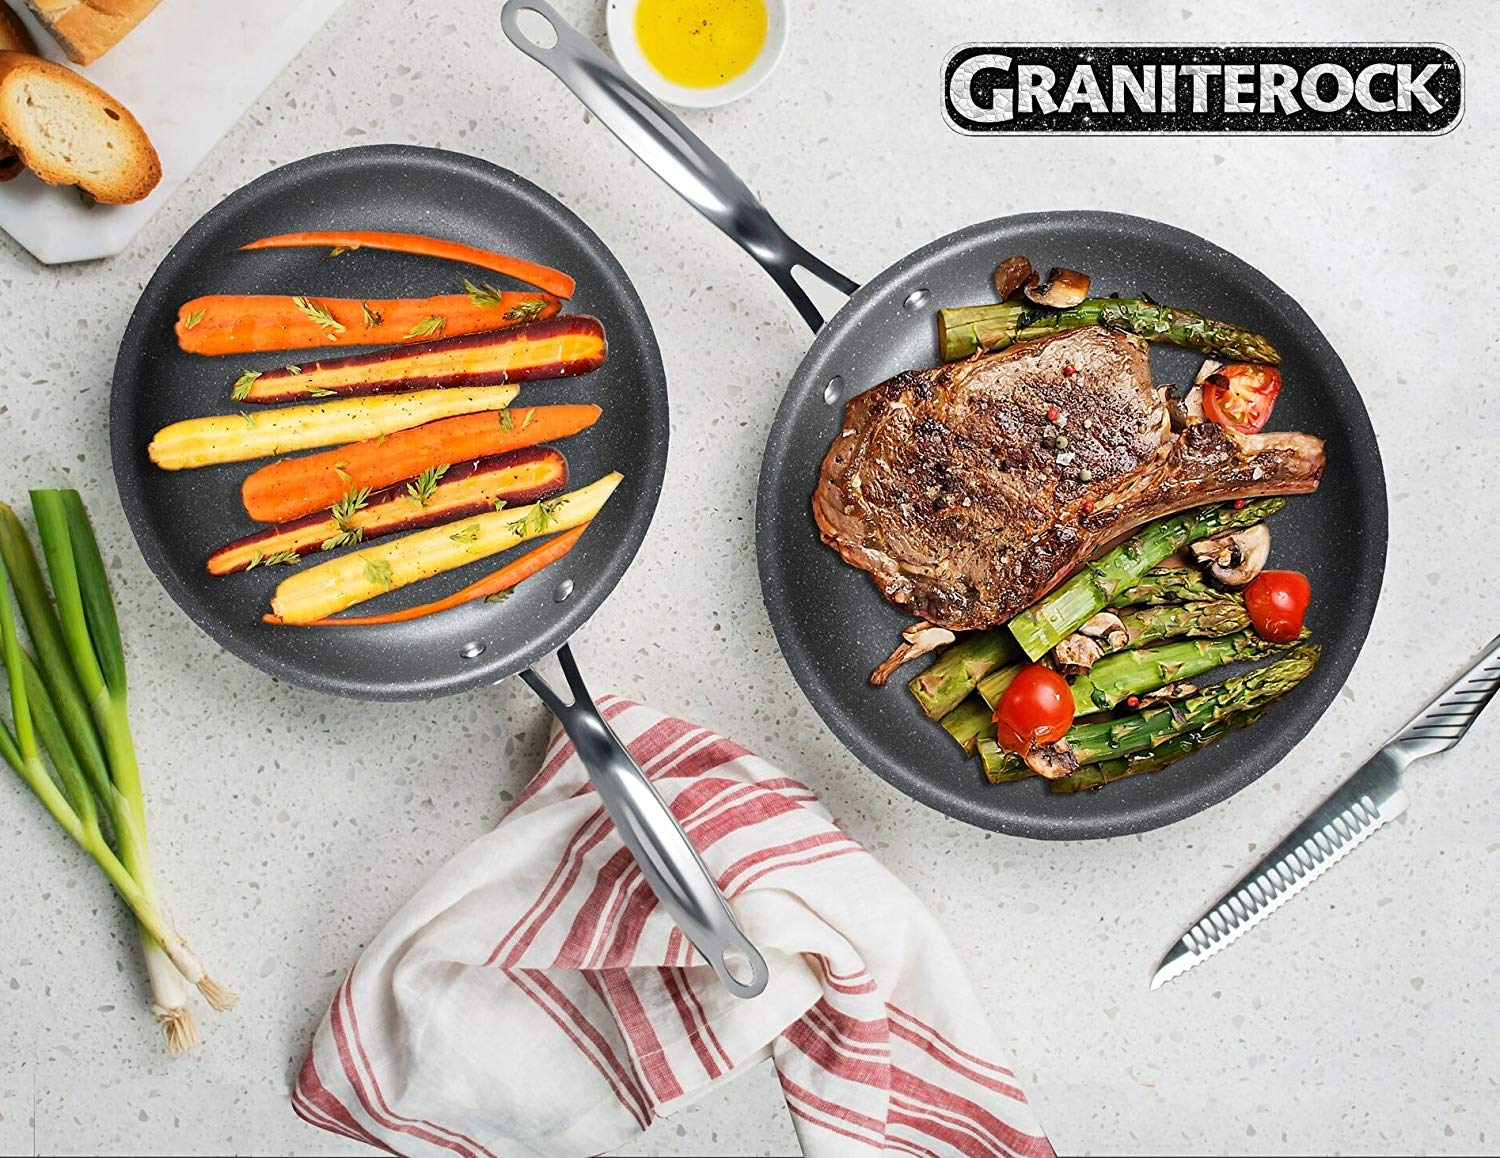 Graniterock Pan Review